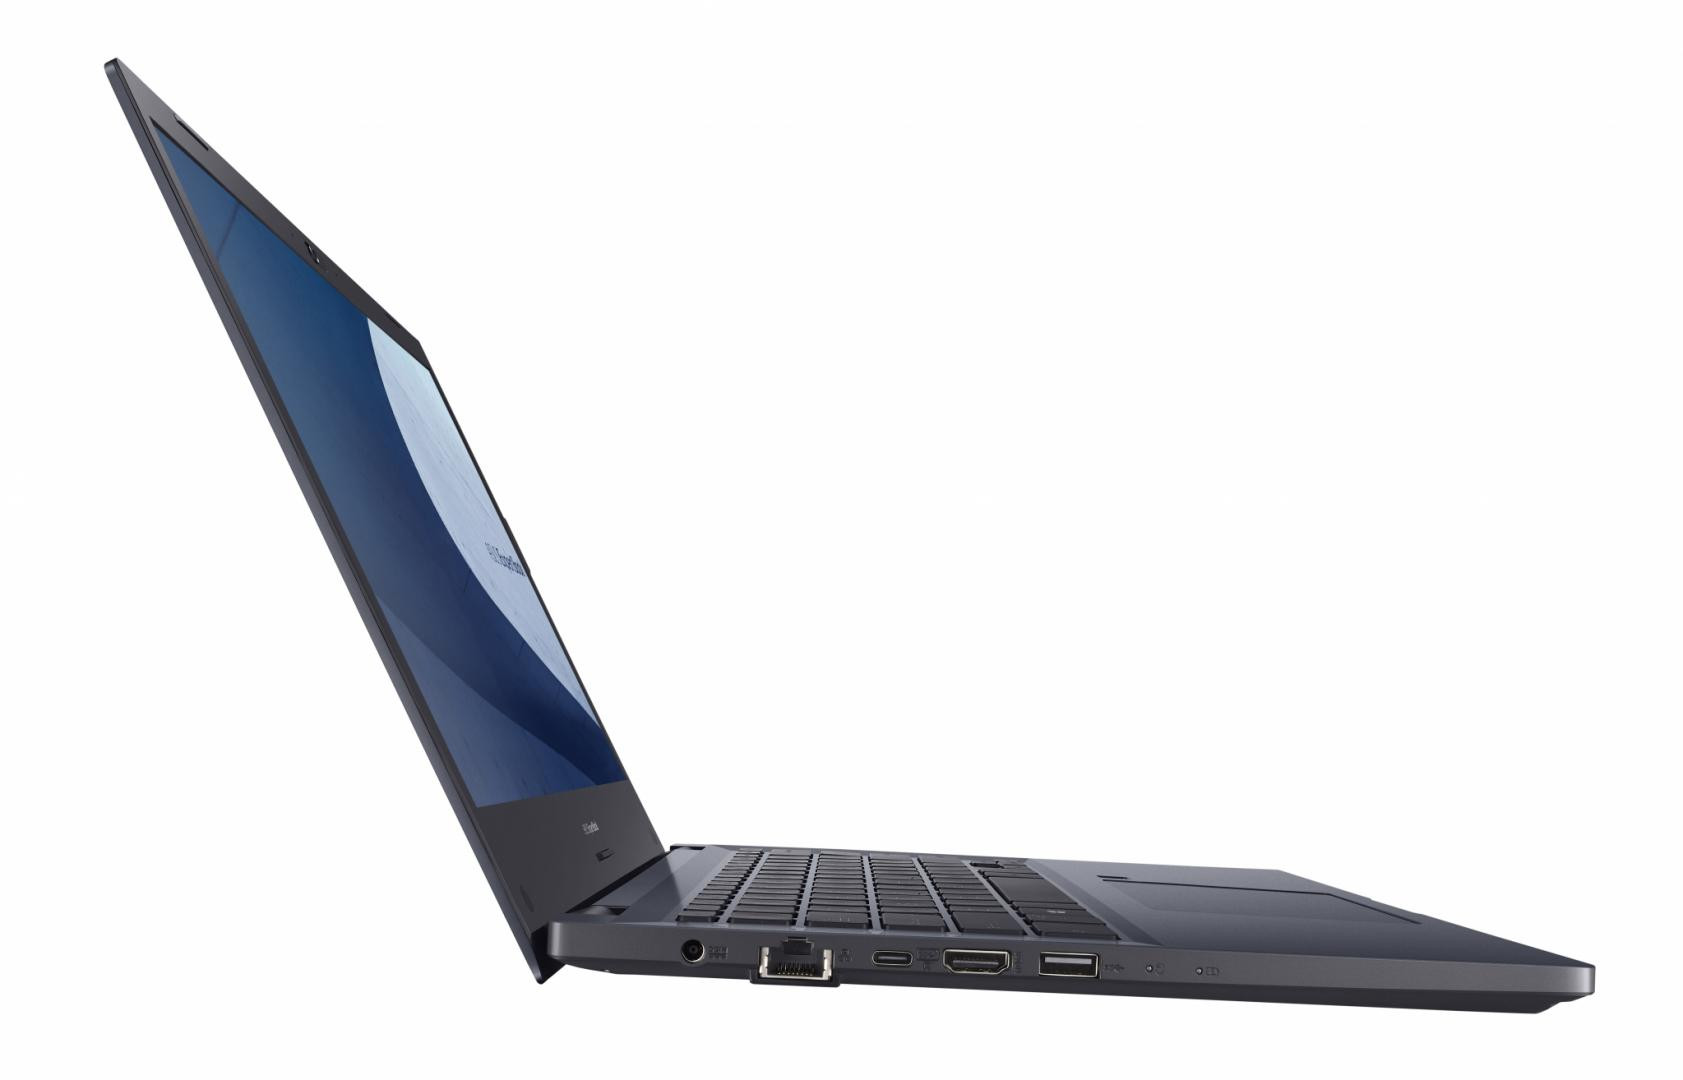 Laptop Business ASUS ExpertBook P2451FA-EK2146, 14.0-inch, FHD (1920 x 1080) 16:9, LCD, Anti-glare display, Intel® Core™ i5-10210U Processor 1.6 GHz (6M Cache, up to 4.2 GHz, 4 cores), Intel® UHD Graphics, 16GB DDR4 SO-DIMM, 512GB M.2 NVMe™ PCIe® 3.0 SSD, Wi-Fi 5(802.11ac)+Bluetooth 4.2 (Dual band) - imaginea 3